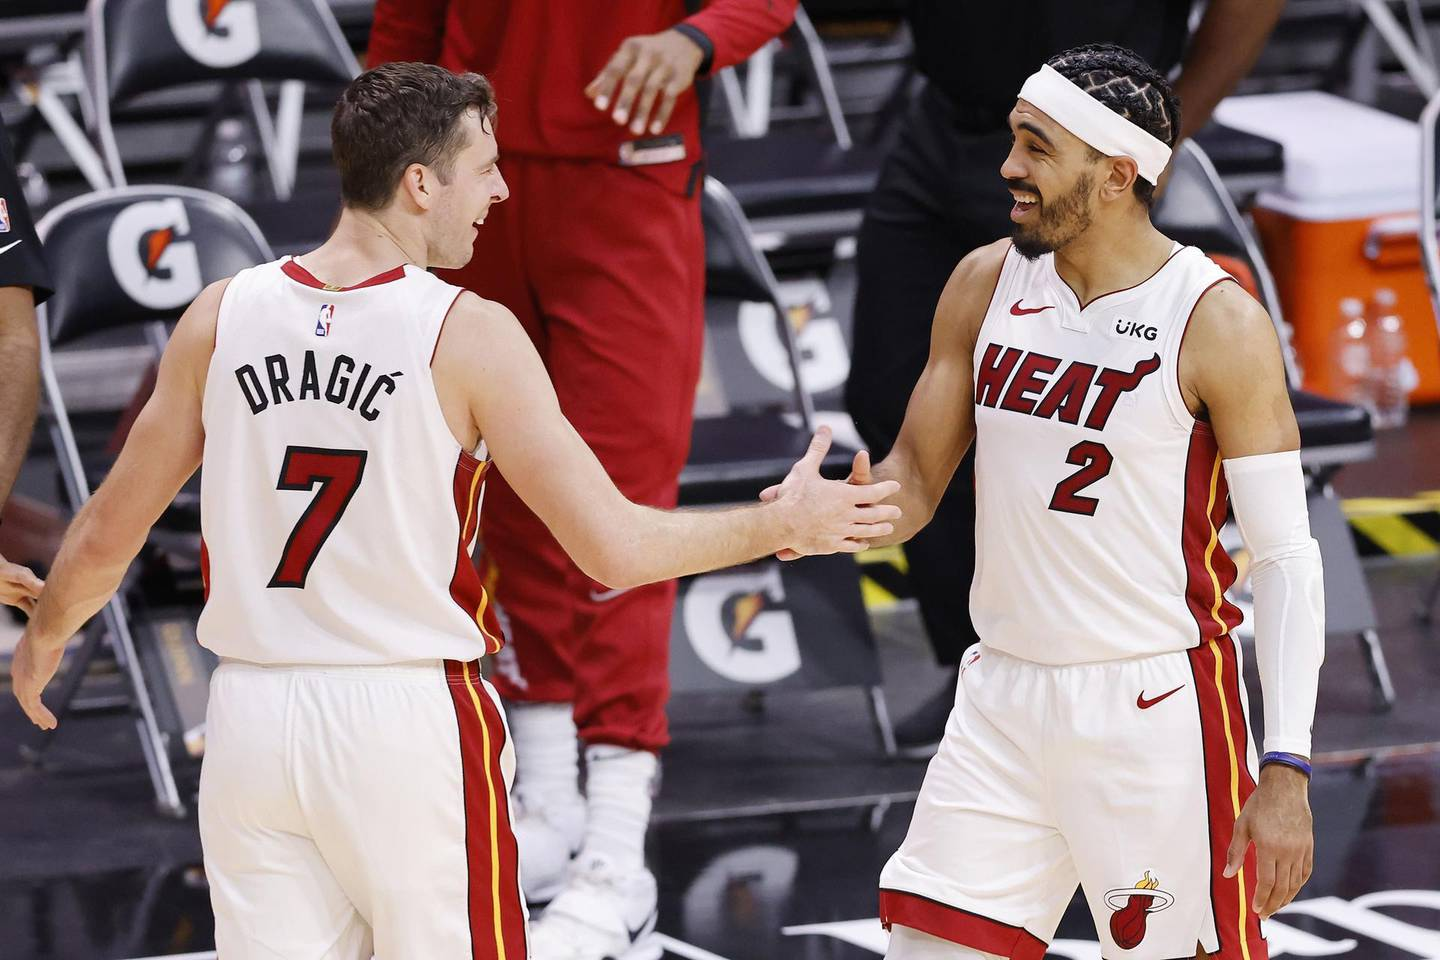 MIAMI, FLORIDA - DECEMBER 30: Goran Dragic #7 of the Miami Heat celebrates with Gabe Vincent #2 after defeating the Milwaukee Bucks 119-108 at American Airlines Arena on December 30, 2020 in Miami, Florida. NOTE TO USER: User expressly acknowledges and agrees that, by downloading and or using this photograph, User is consenting to the terms and conditions of the Getty Images License Agreement.   Michael Reaves/Getty Images/AFP == FOR NEWSPAPERS, INTERNET, TELCOS & TELEVISION USE ONLY ==